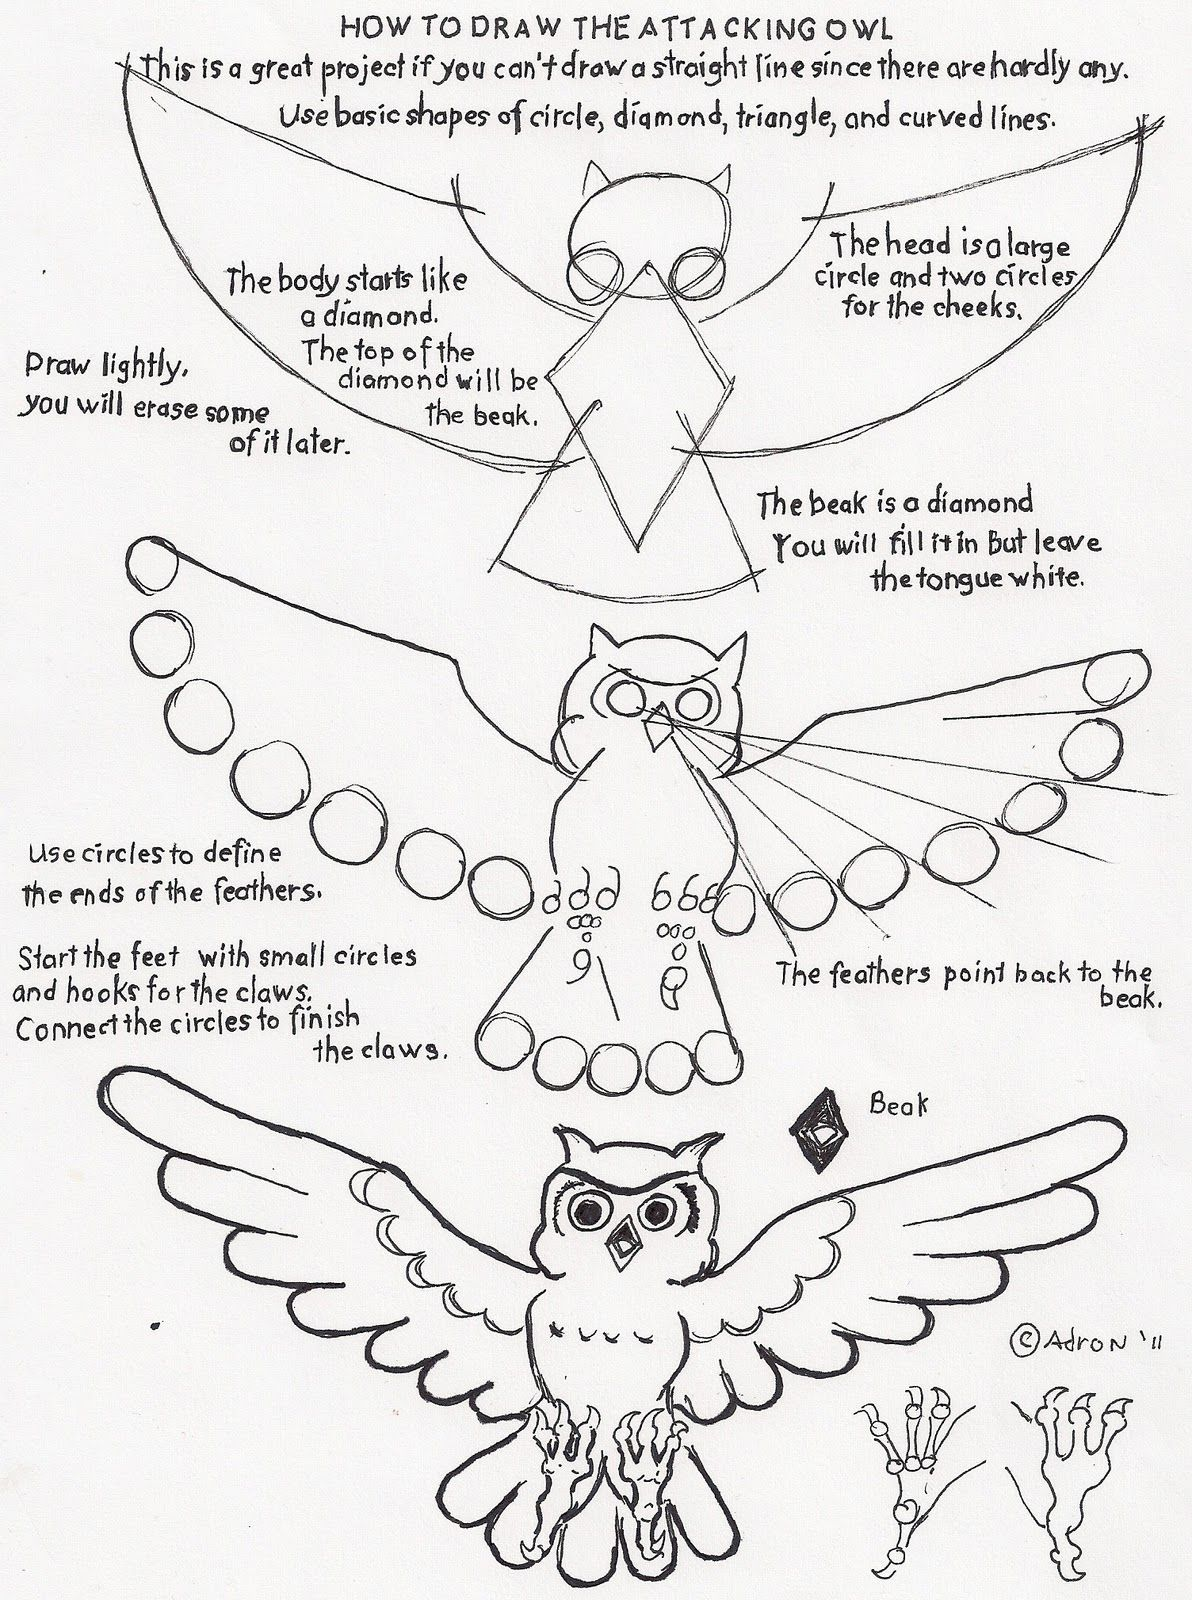 worksheet Owl Worksheets how to draw worksheets for the young artist an attacking owl